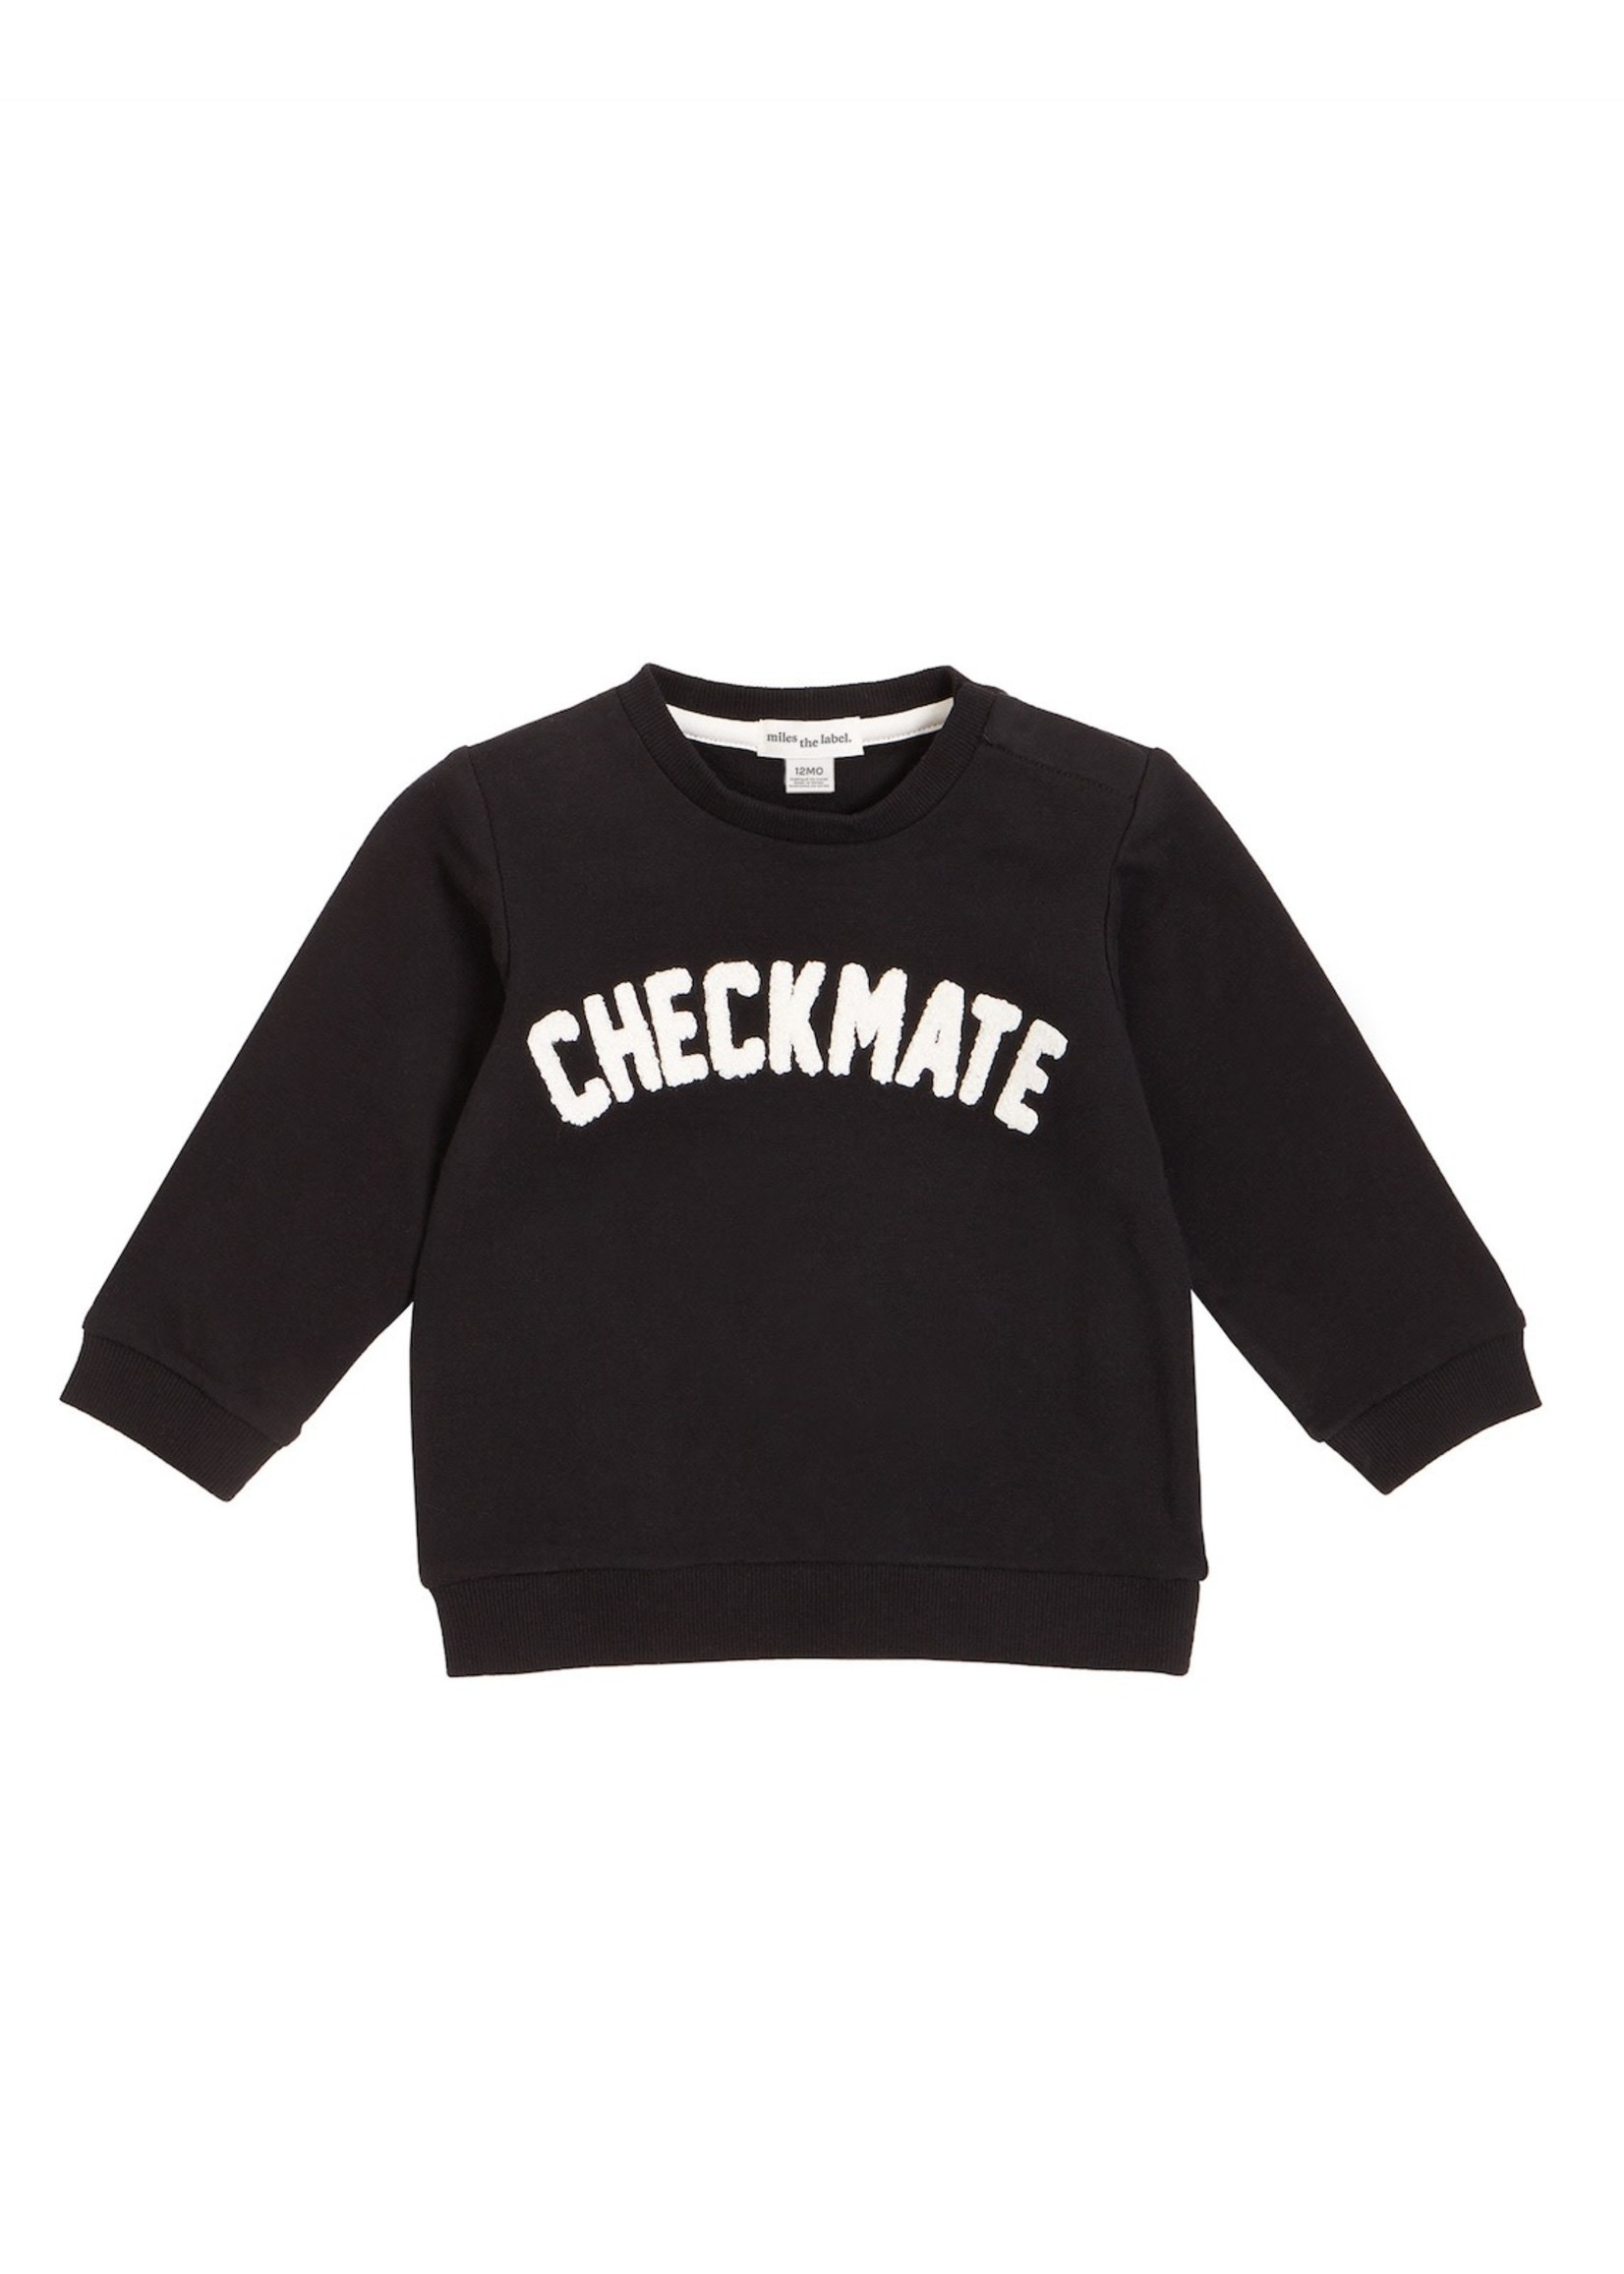 Miles Baby Miles, Chenille CHECKMATE Baby Sweatshirt in Black